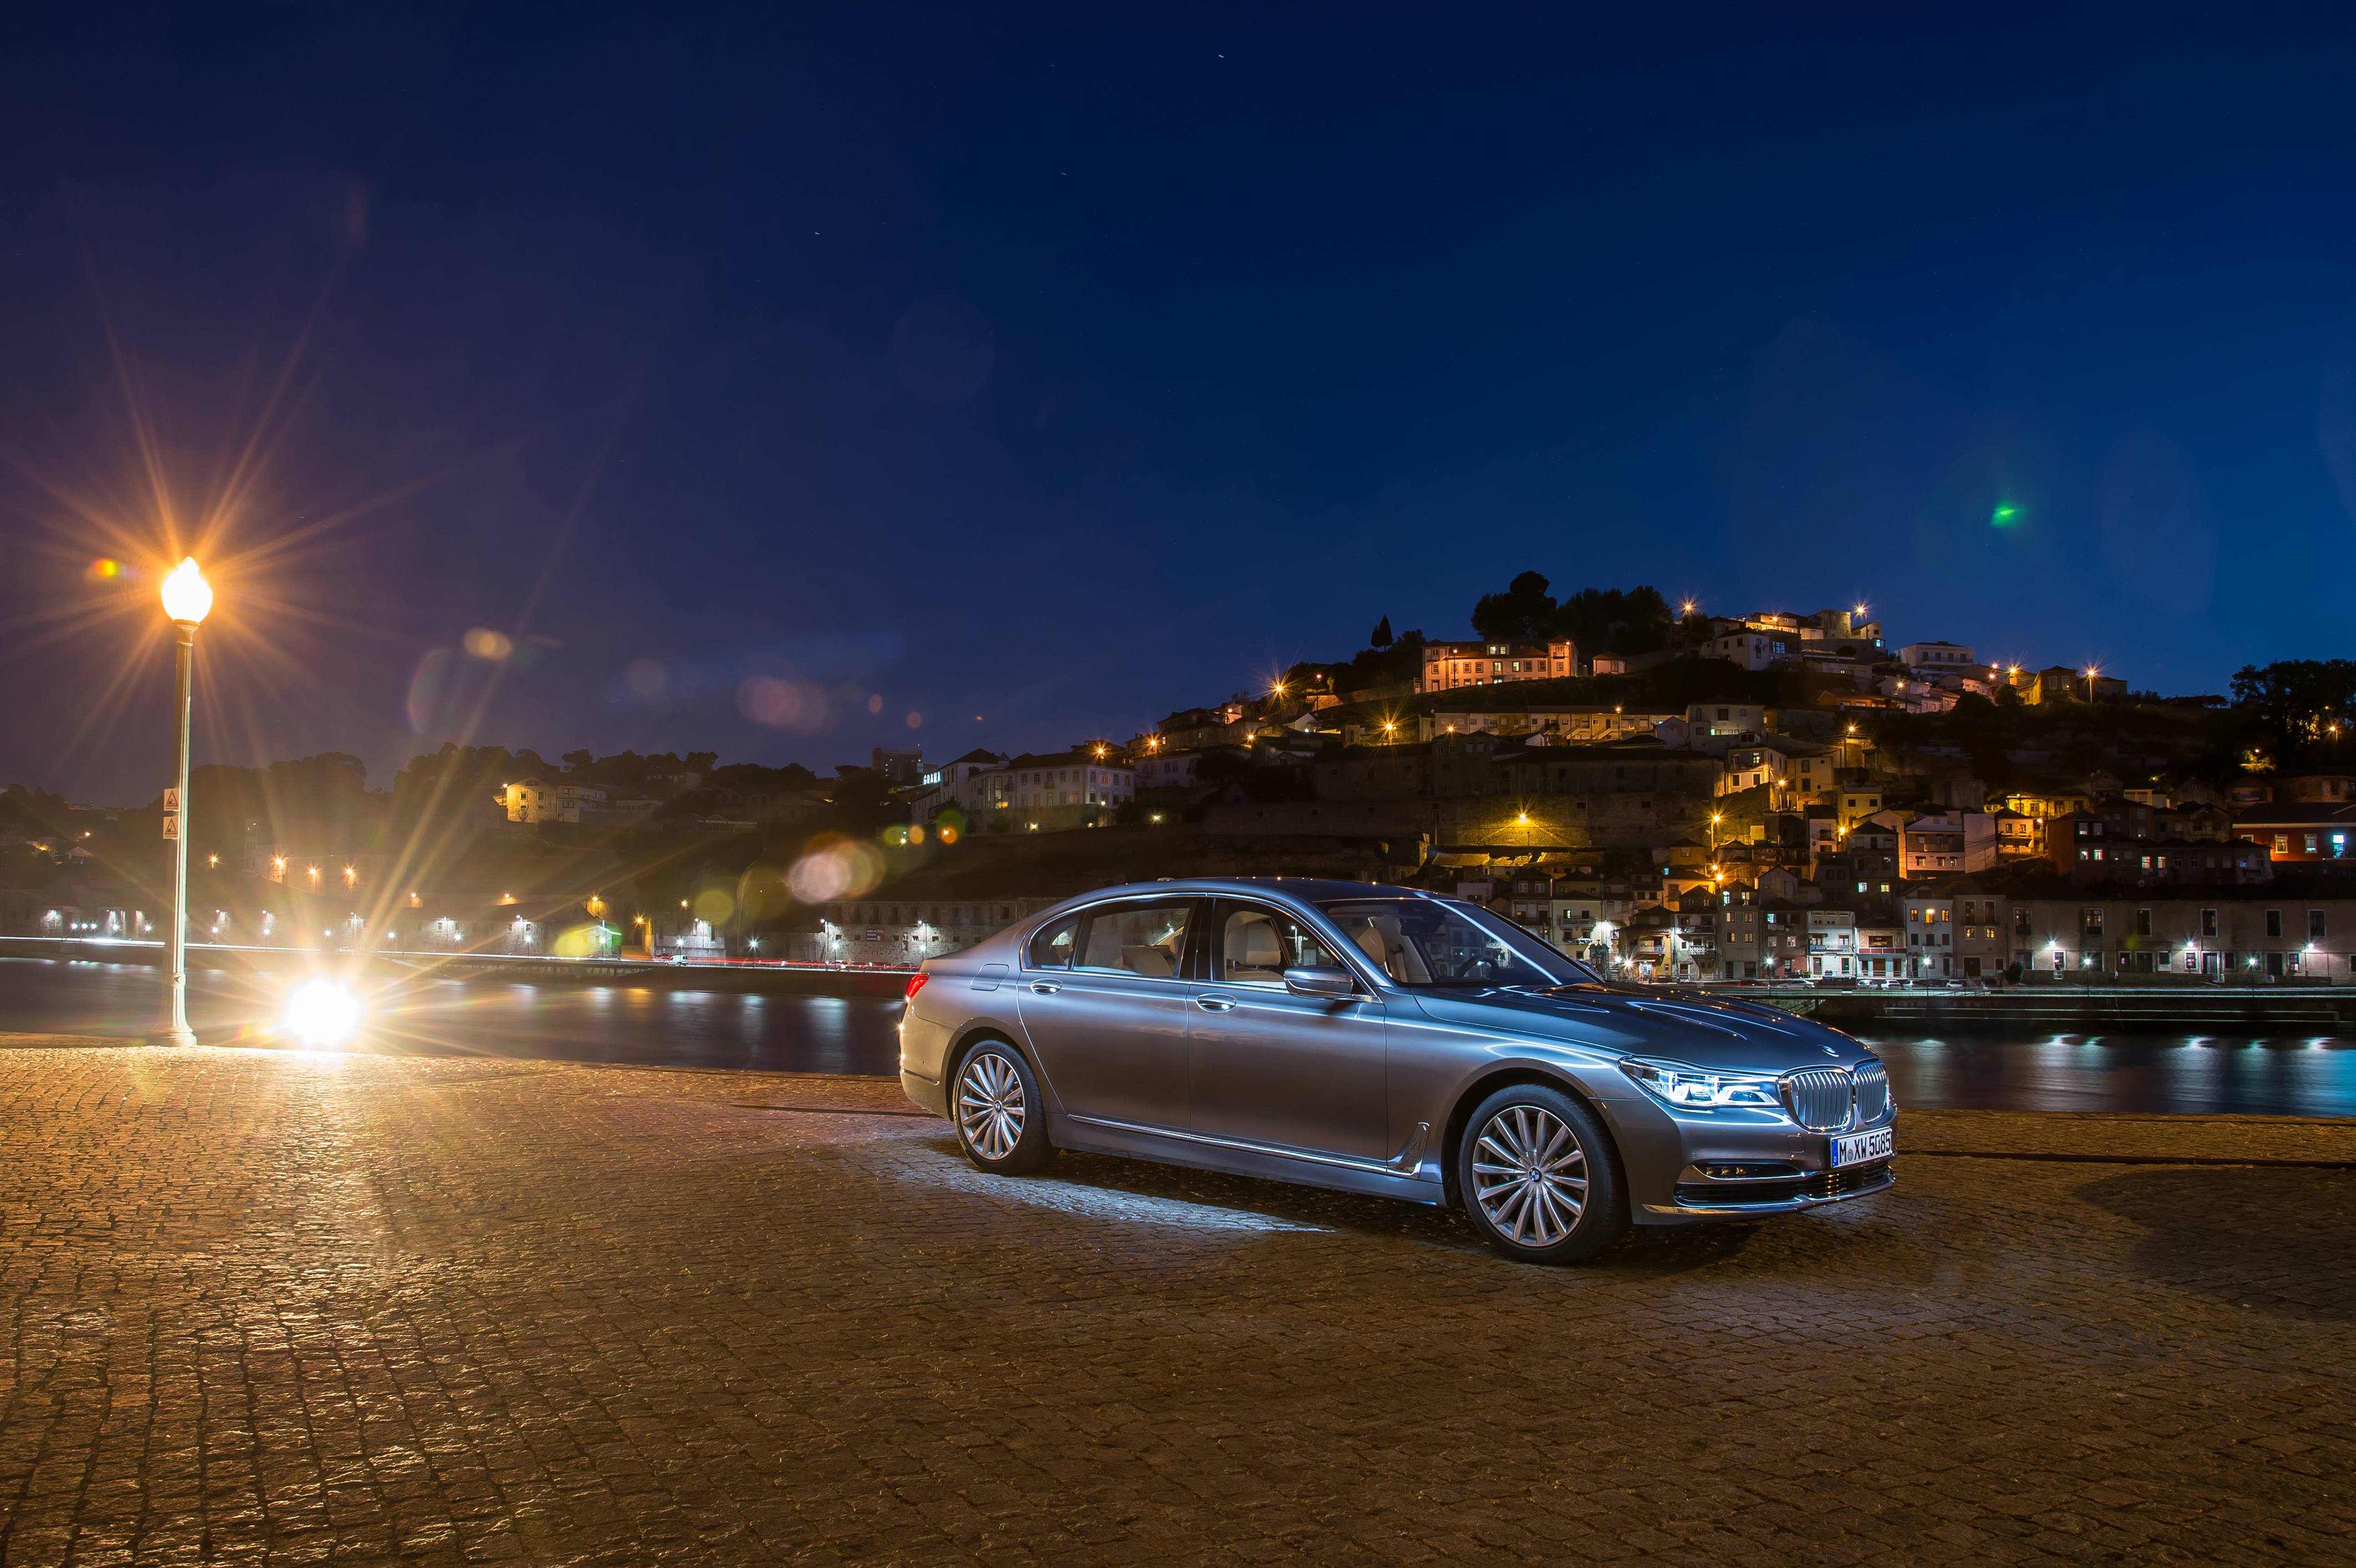 BMW 750il xDrive - BMW Serie 7 G12